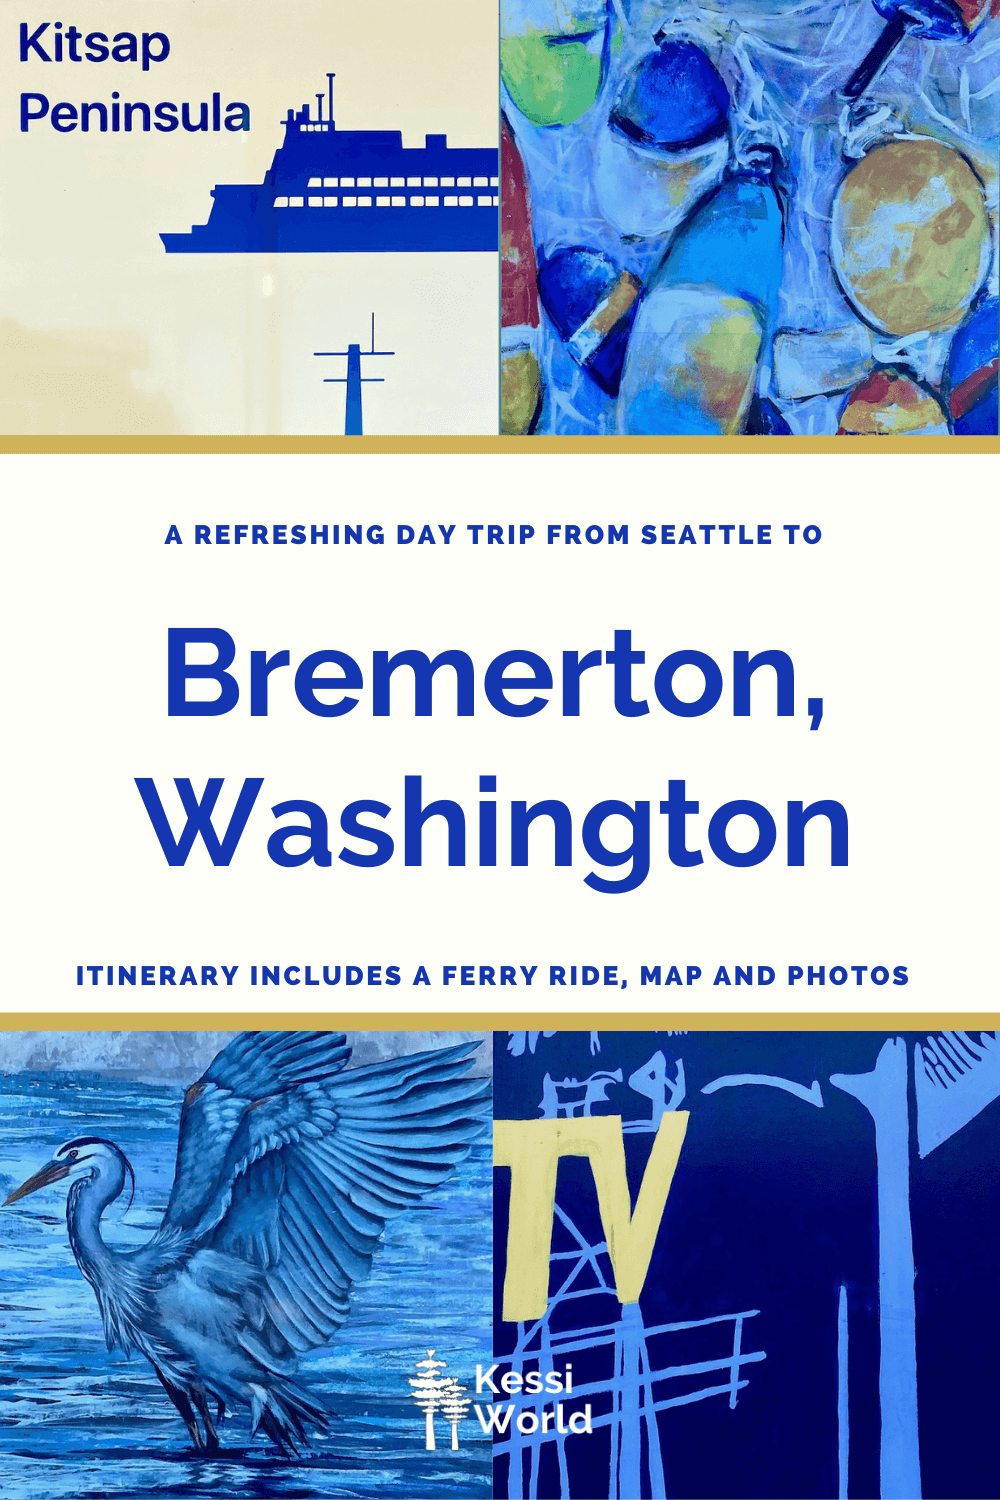 This Pinterest pin depicts different pieces of art found in Bremerton, Washington. This tile is to promote a day trip from Seattle to the Kitsap Peninsula.